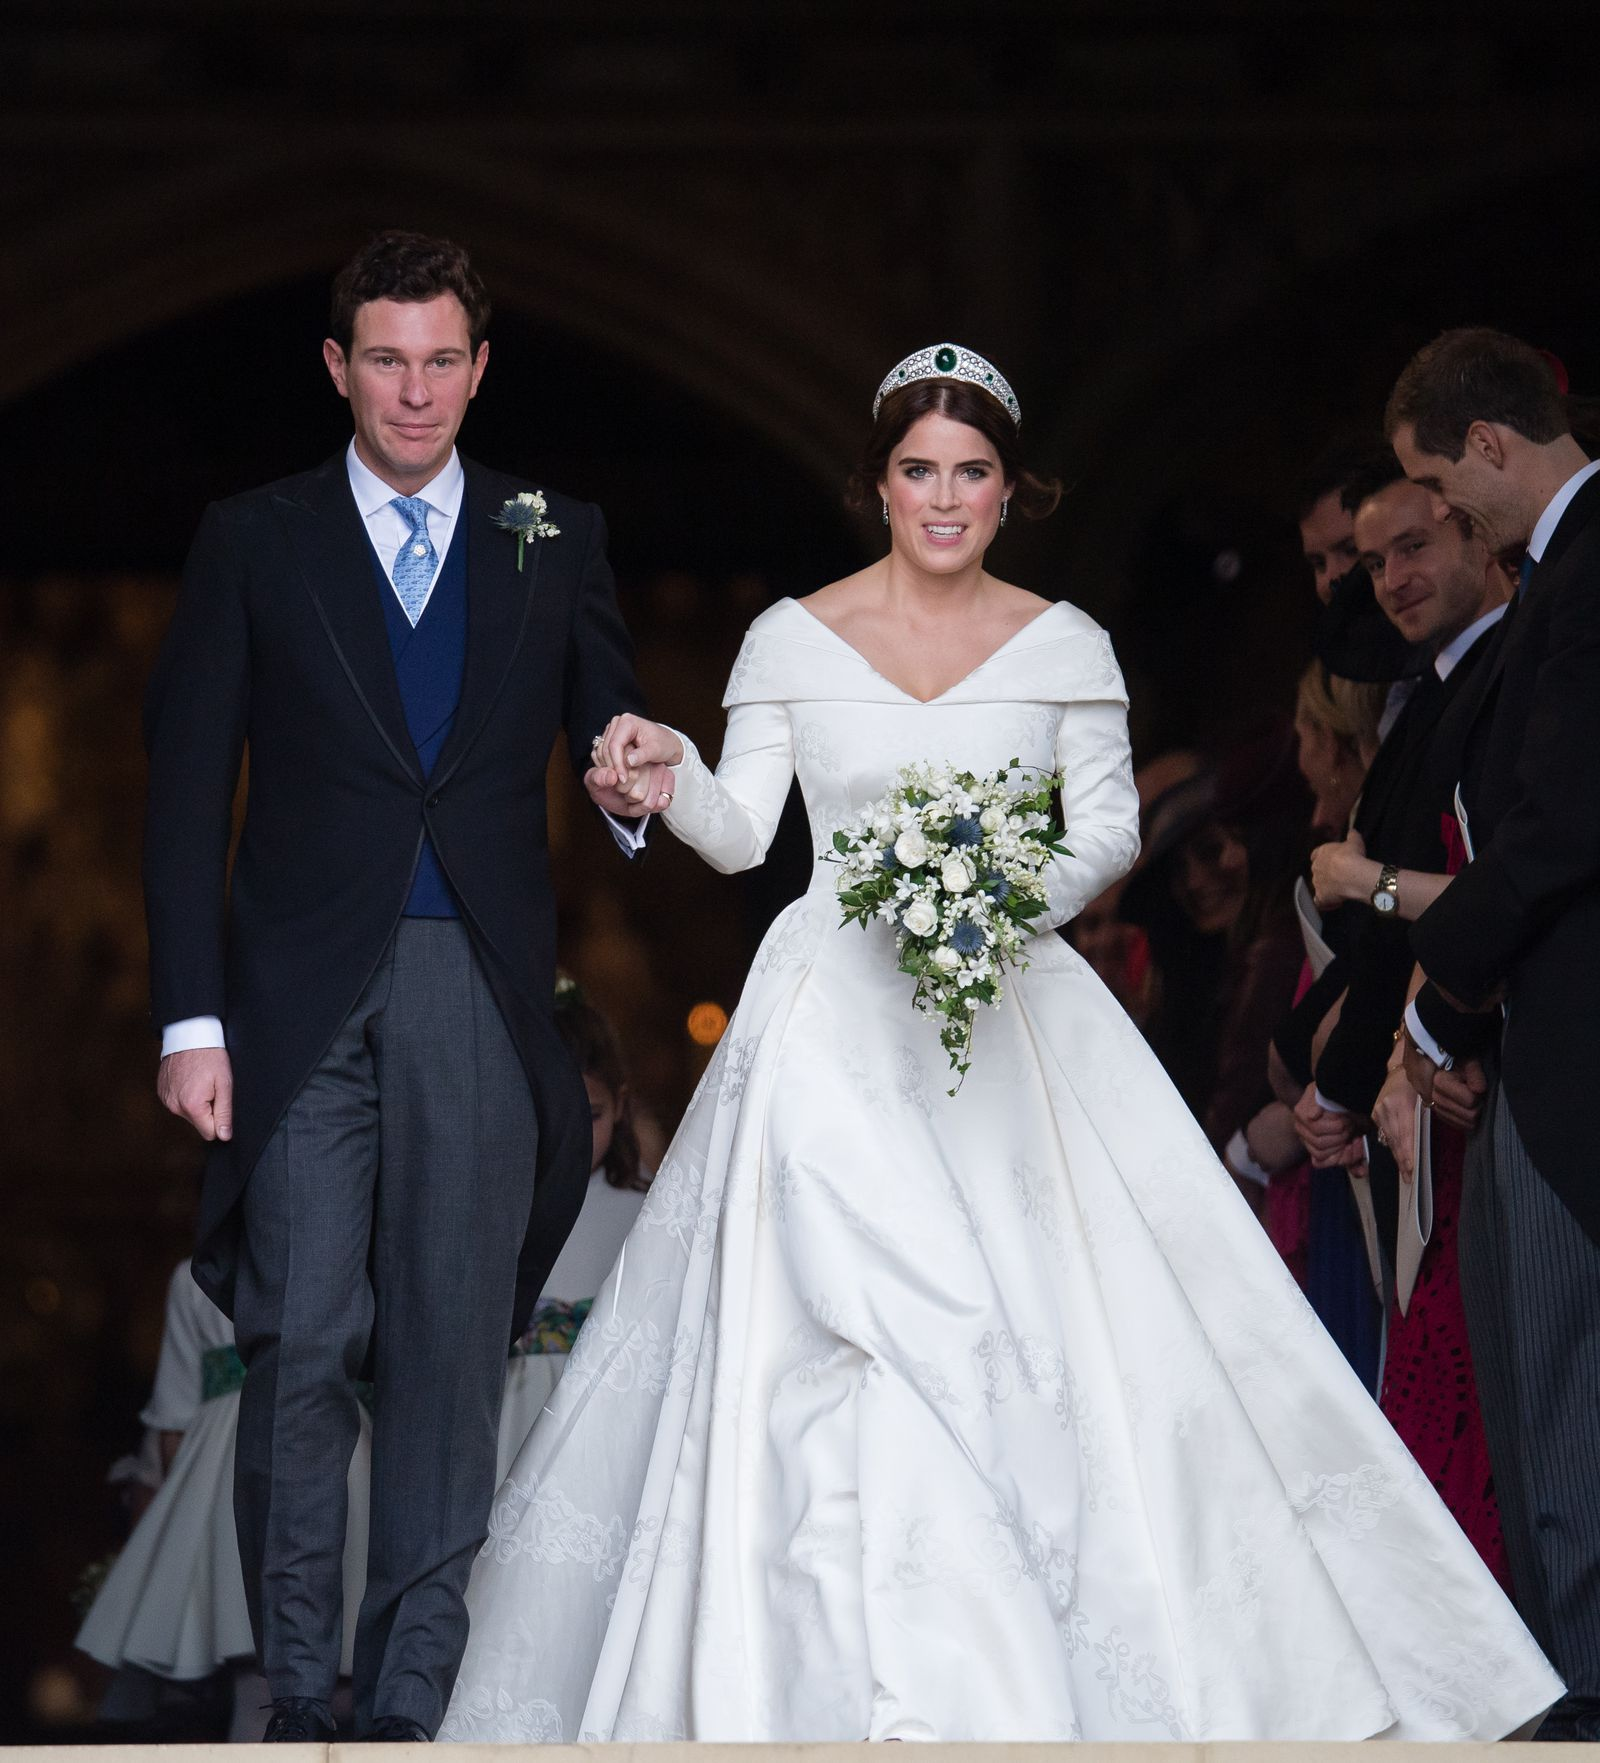 See Every Gorgeous Photo Of Princess Eugenie In Her Wedding Dress Townandcountrymag Com Eugenie Wedding Kate Wedding Dress Wedding Dresses [ 1763 x 1600 Pixel ]